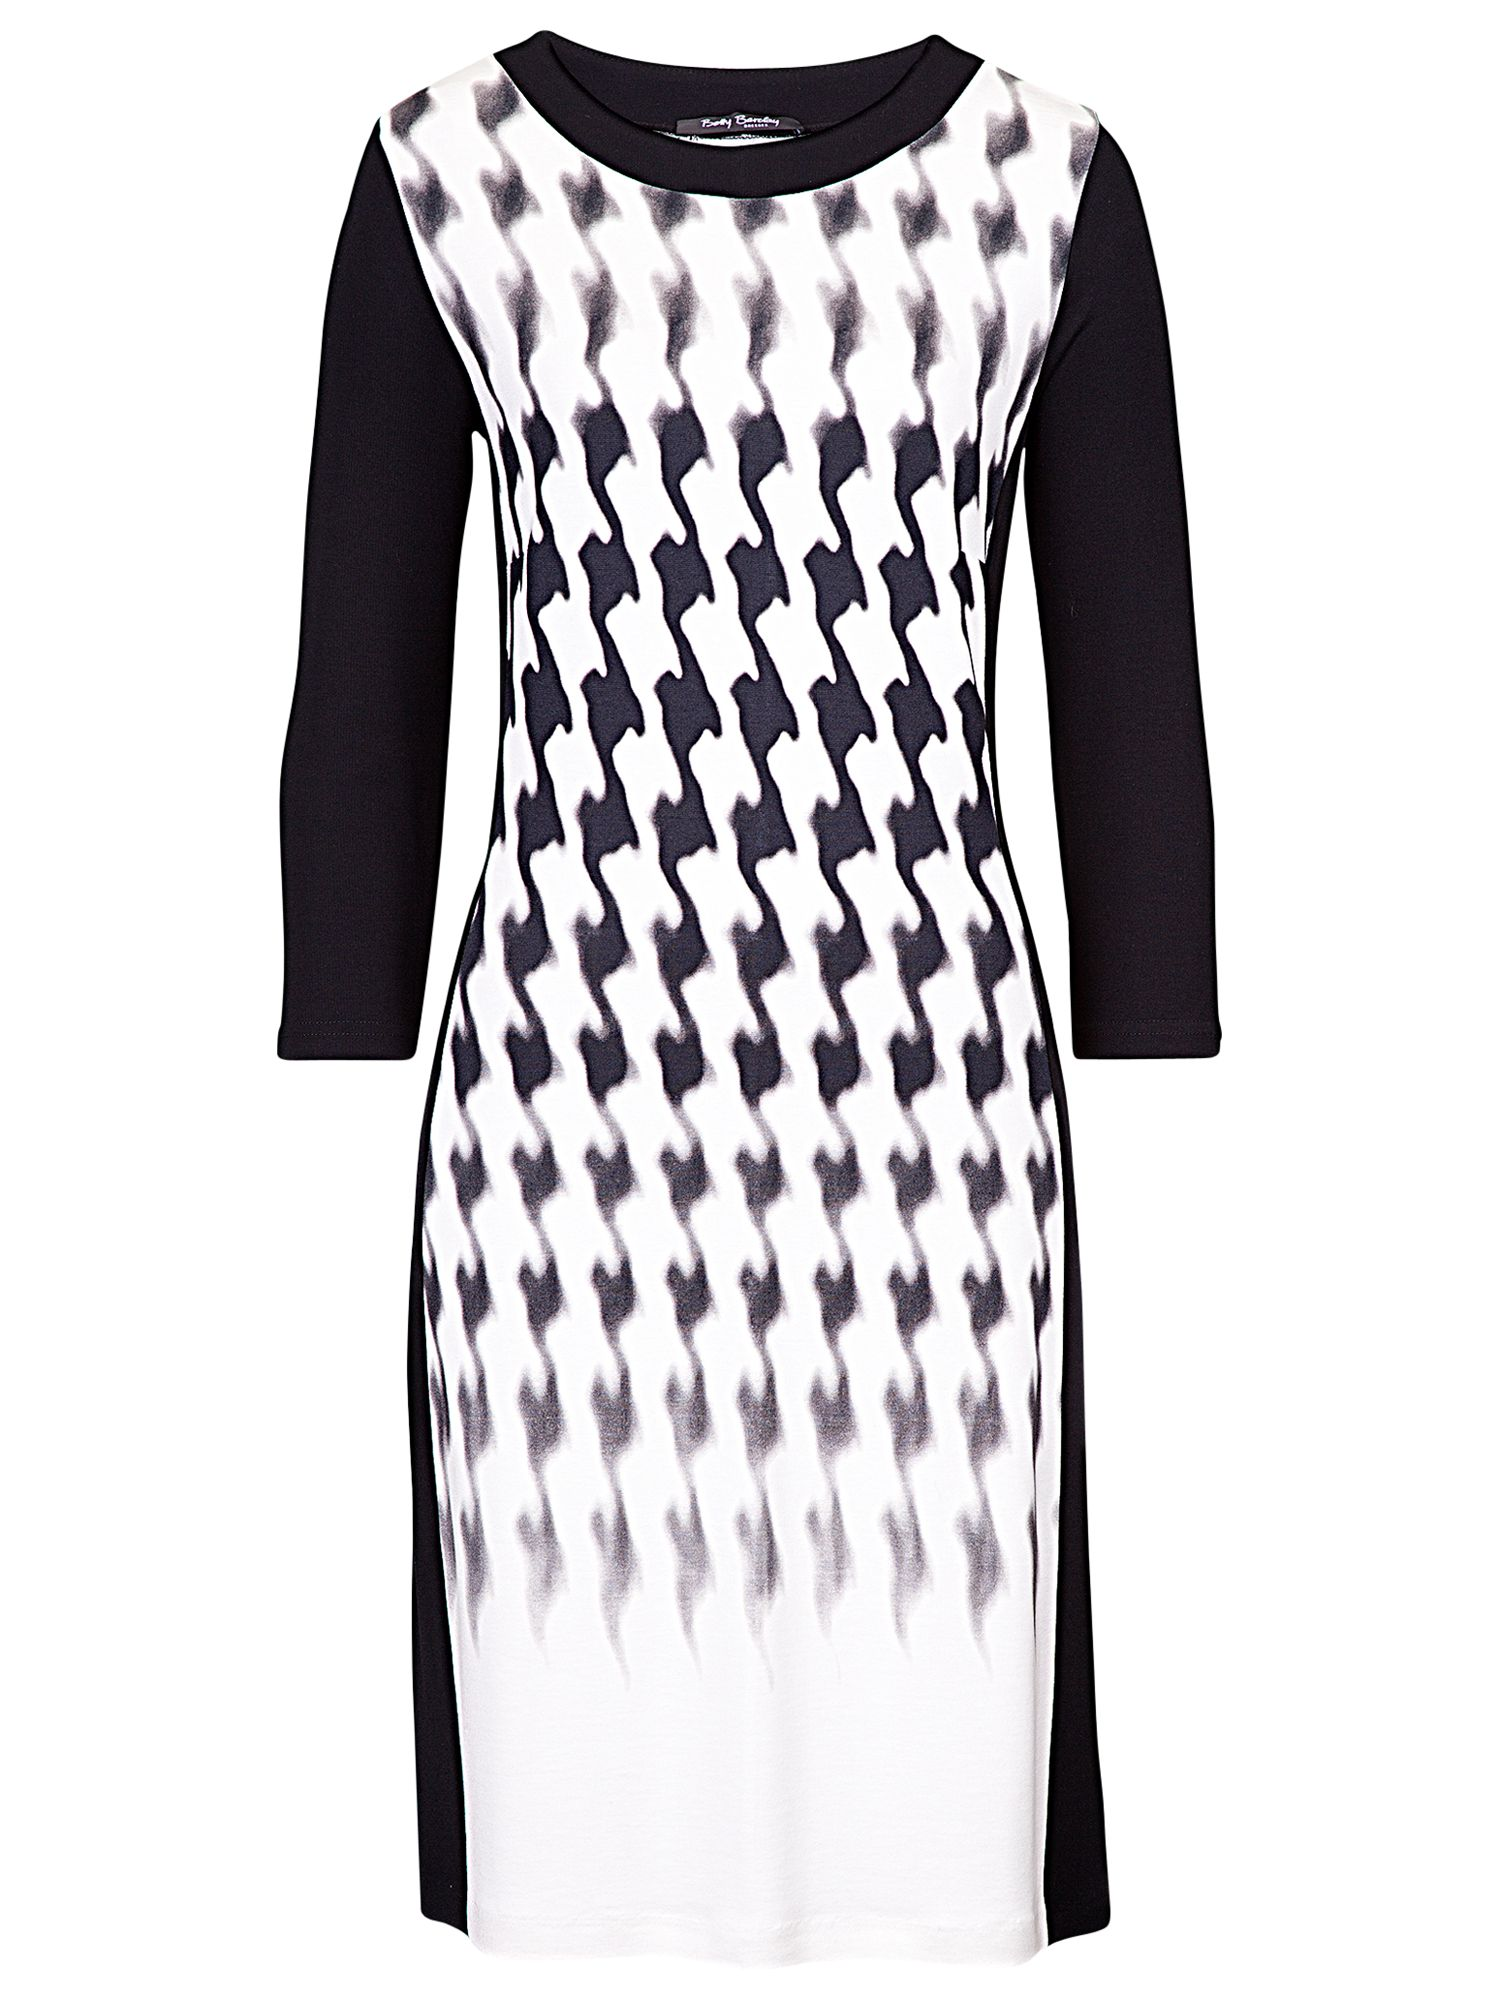 betty barclay digital dogtooth dress cream/black, betty, barclay, digital, dogtooth, dress, cream/black, betty barclay, 20|18, clearance, womenswear offers, womens dresses offers, women, inactive womenswear, new reductions, womens dresses, special offers, 1505300